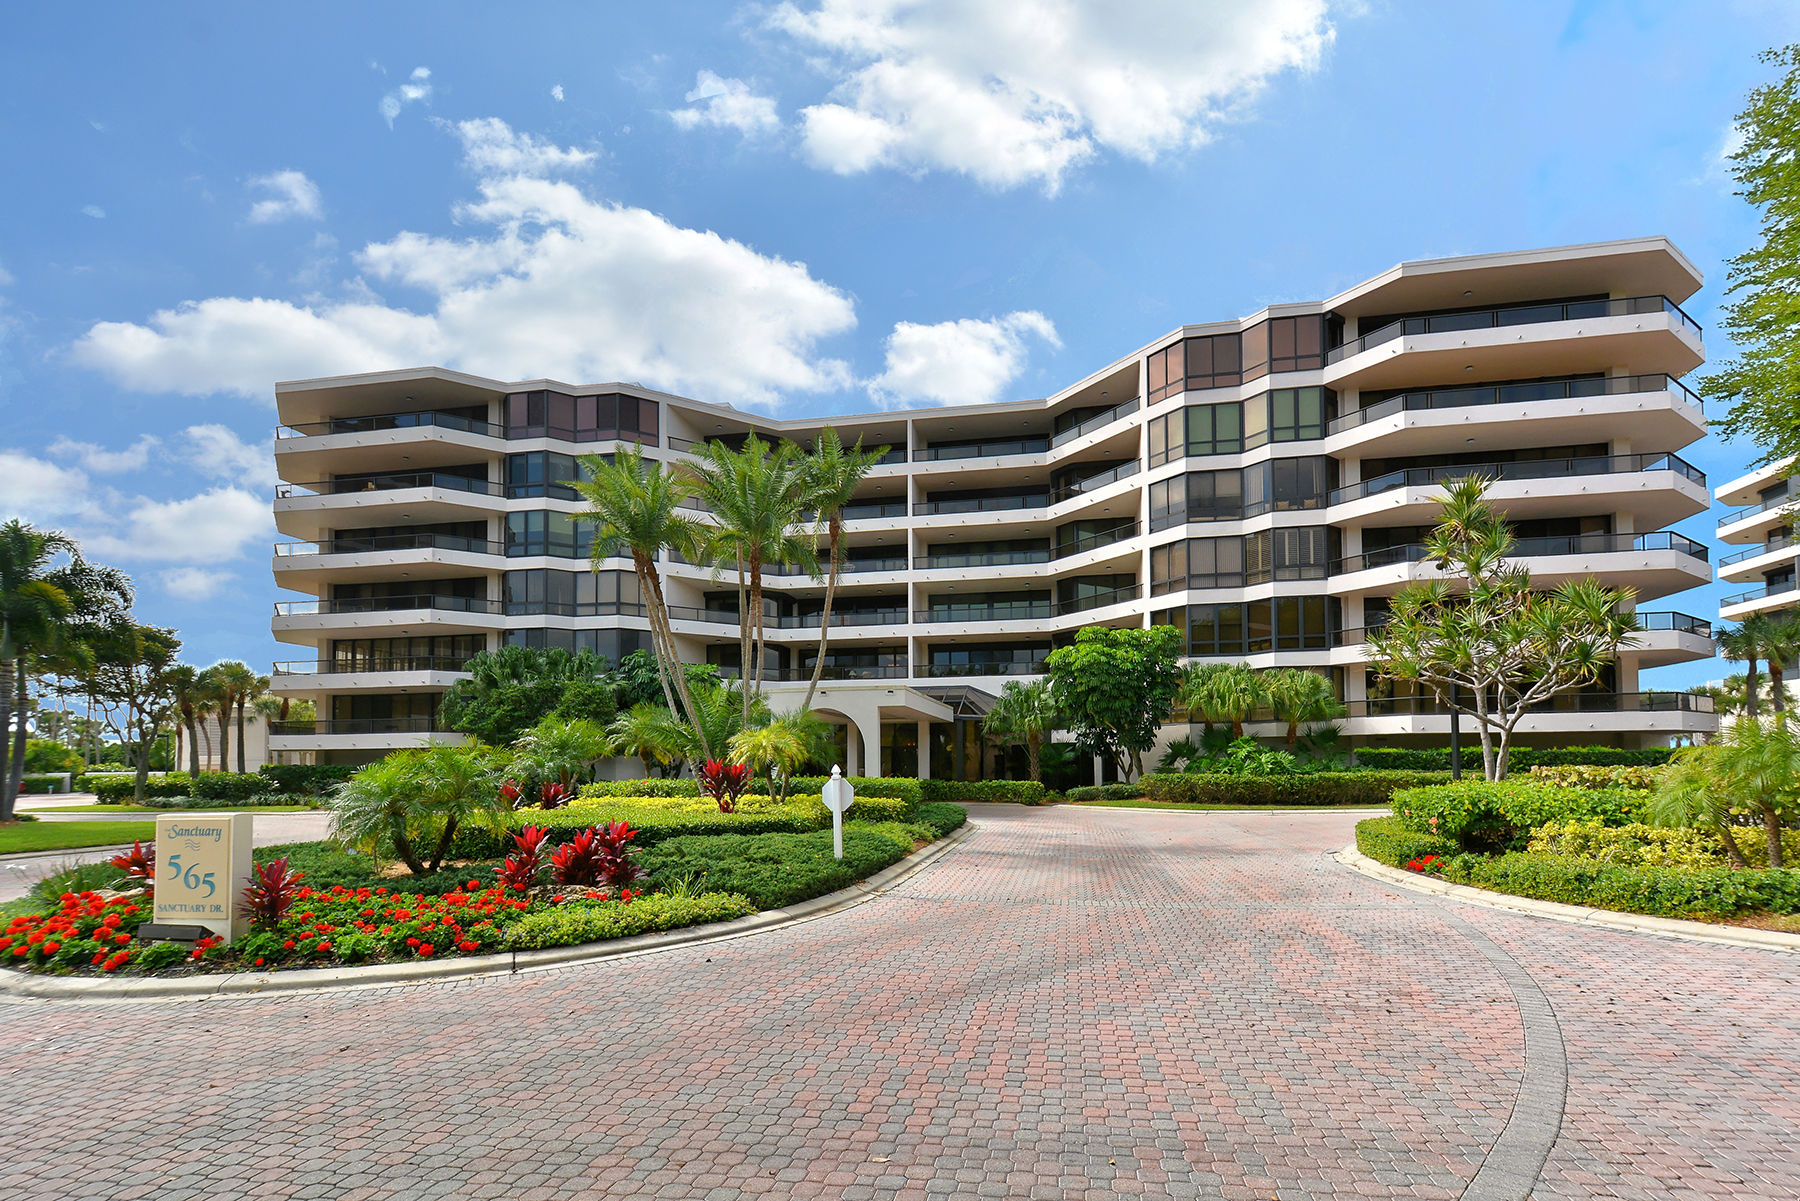 Condominium for Sale at LONGBOAT KEY 565 Sanctuary Dr A202 Longboat Key, Florida, 34228 United States